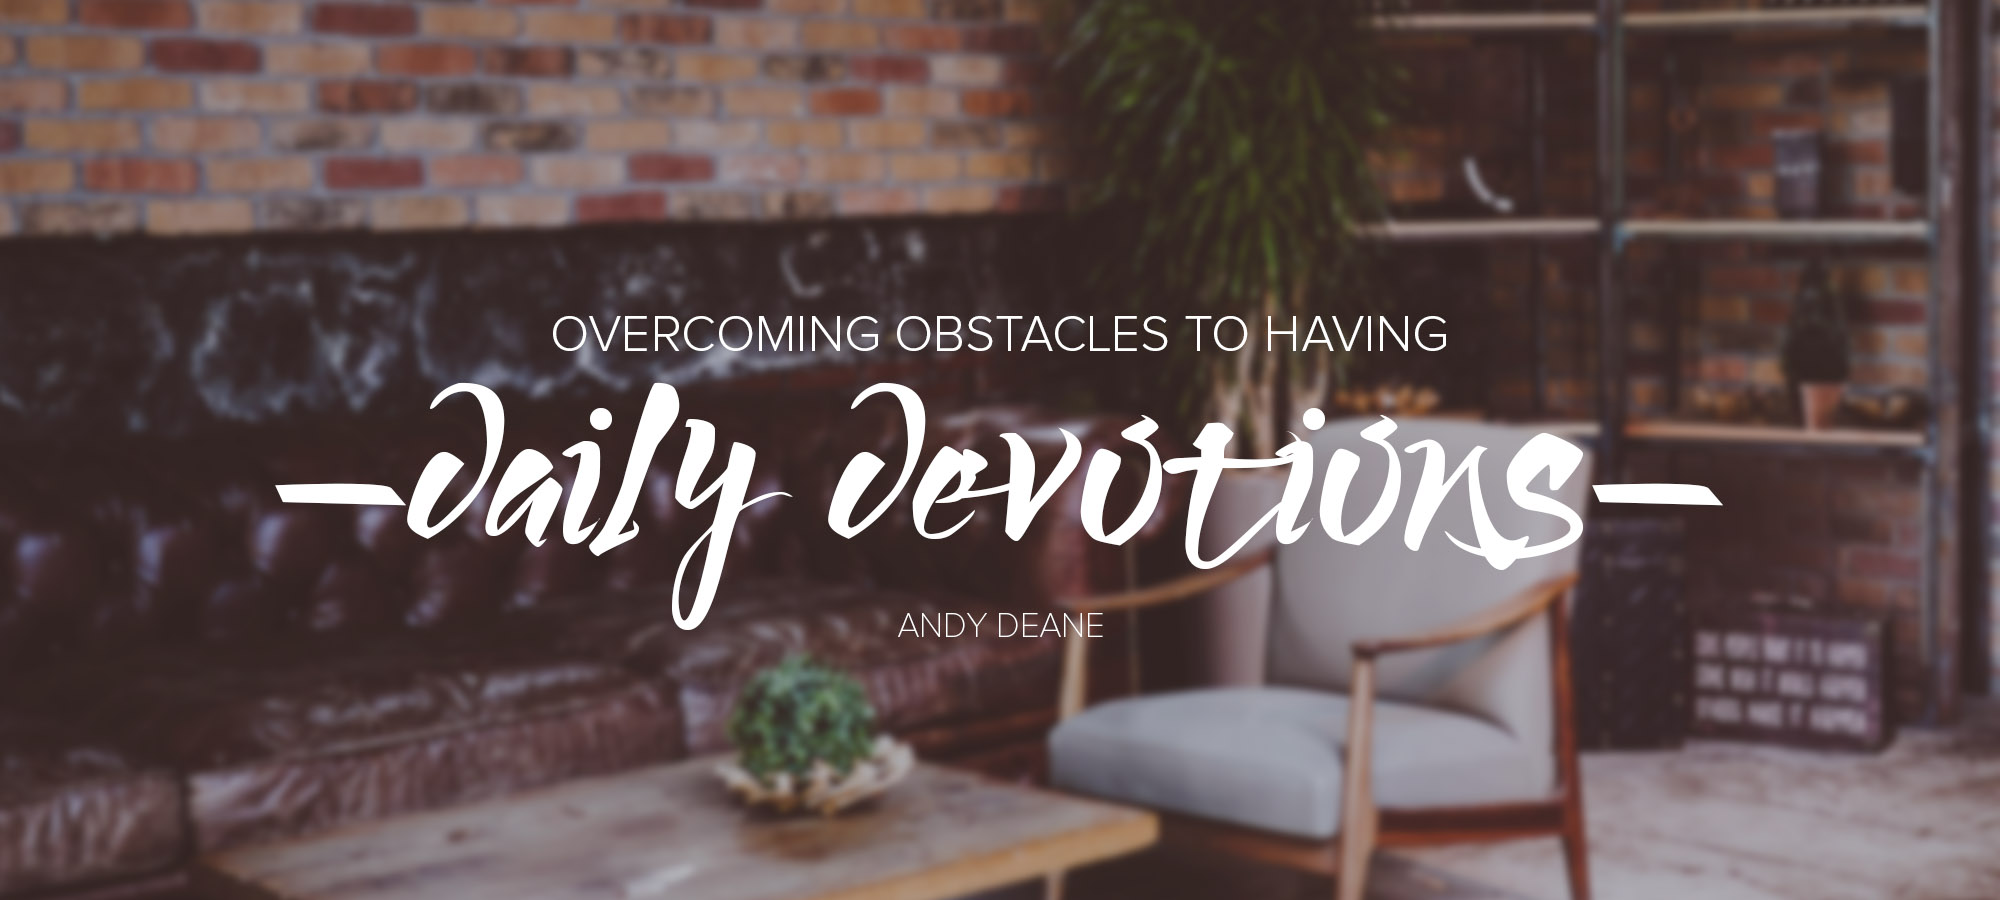 Overcoming Obstacles to Having Daily Devotions